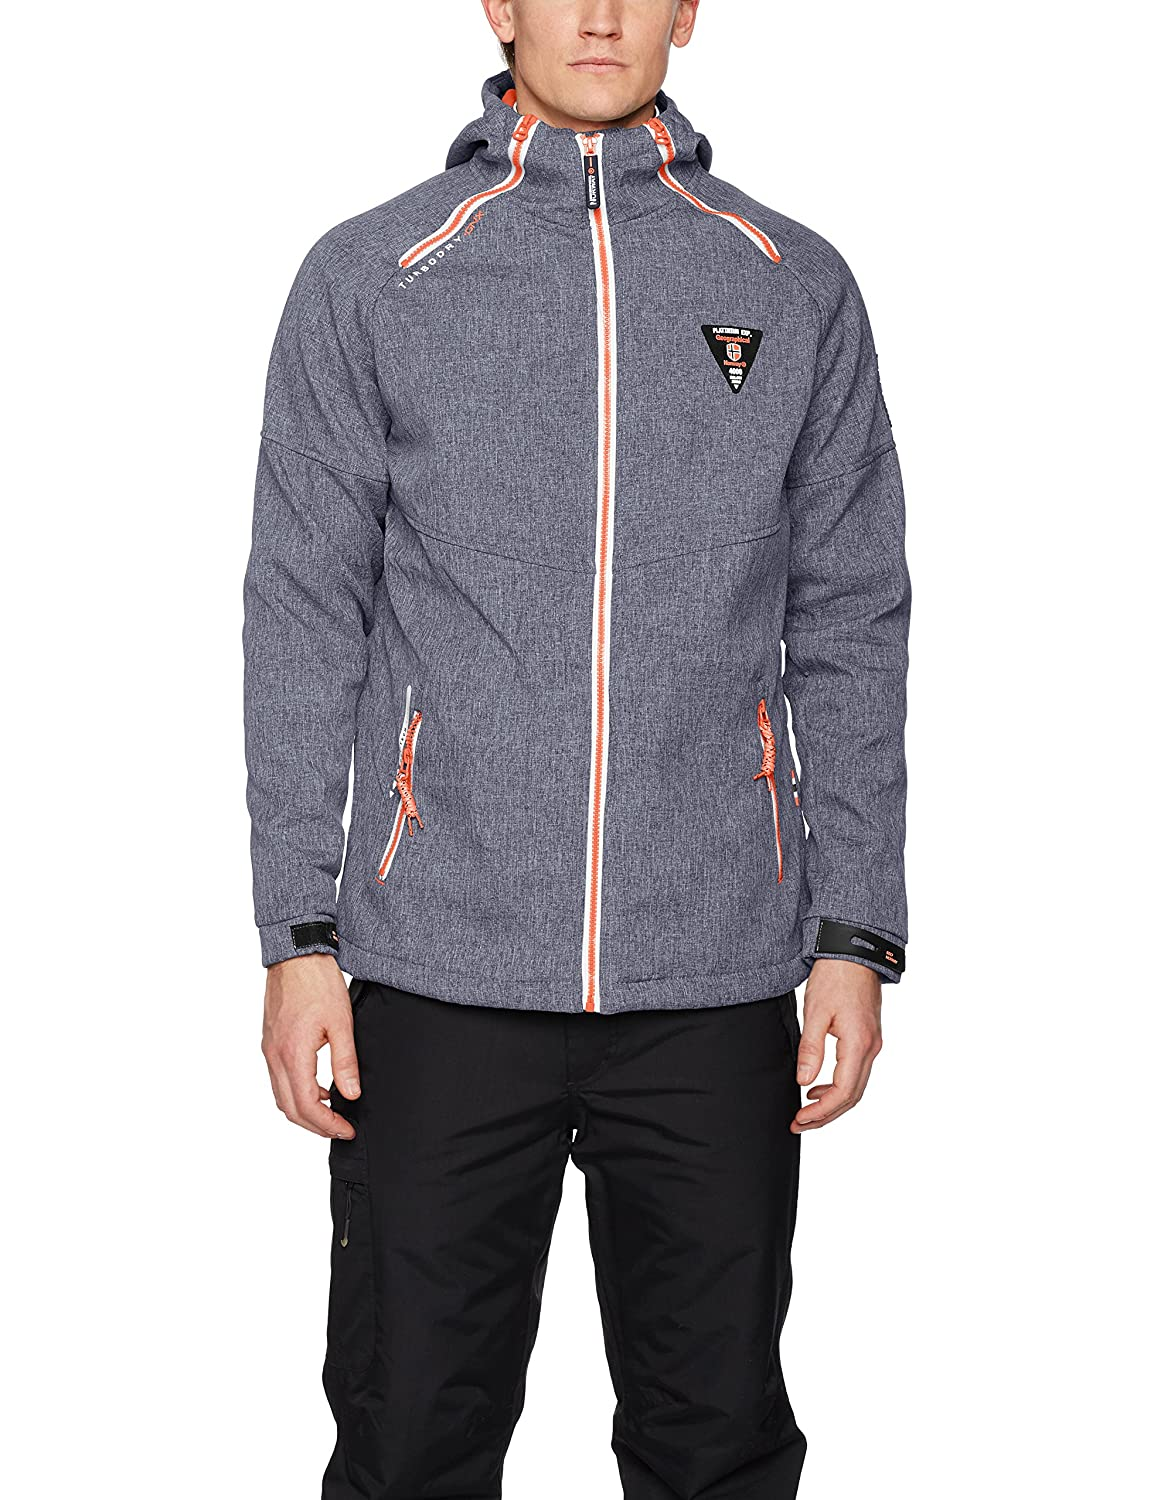 Geographical Norway Taventure Men Sports Jacket WN102H/GN